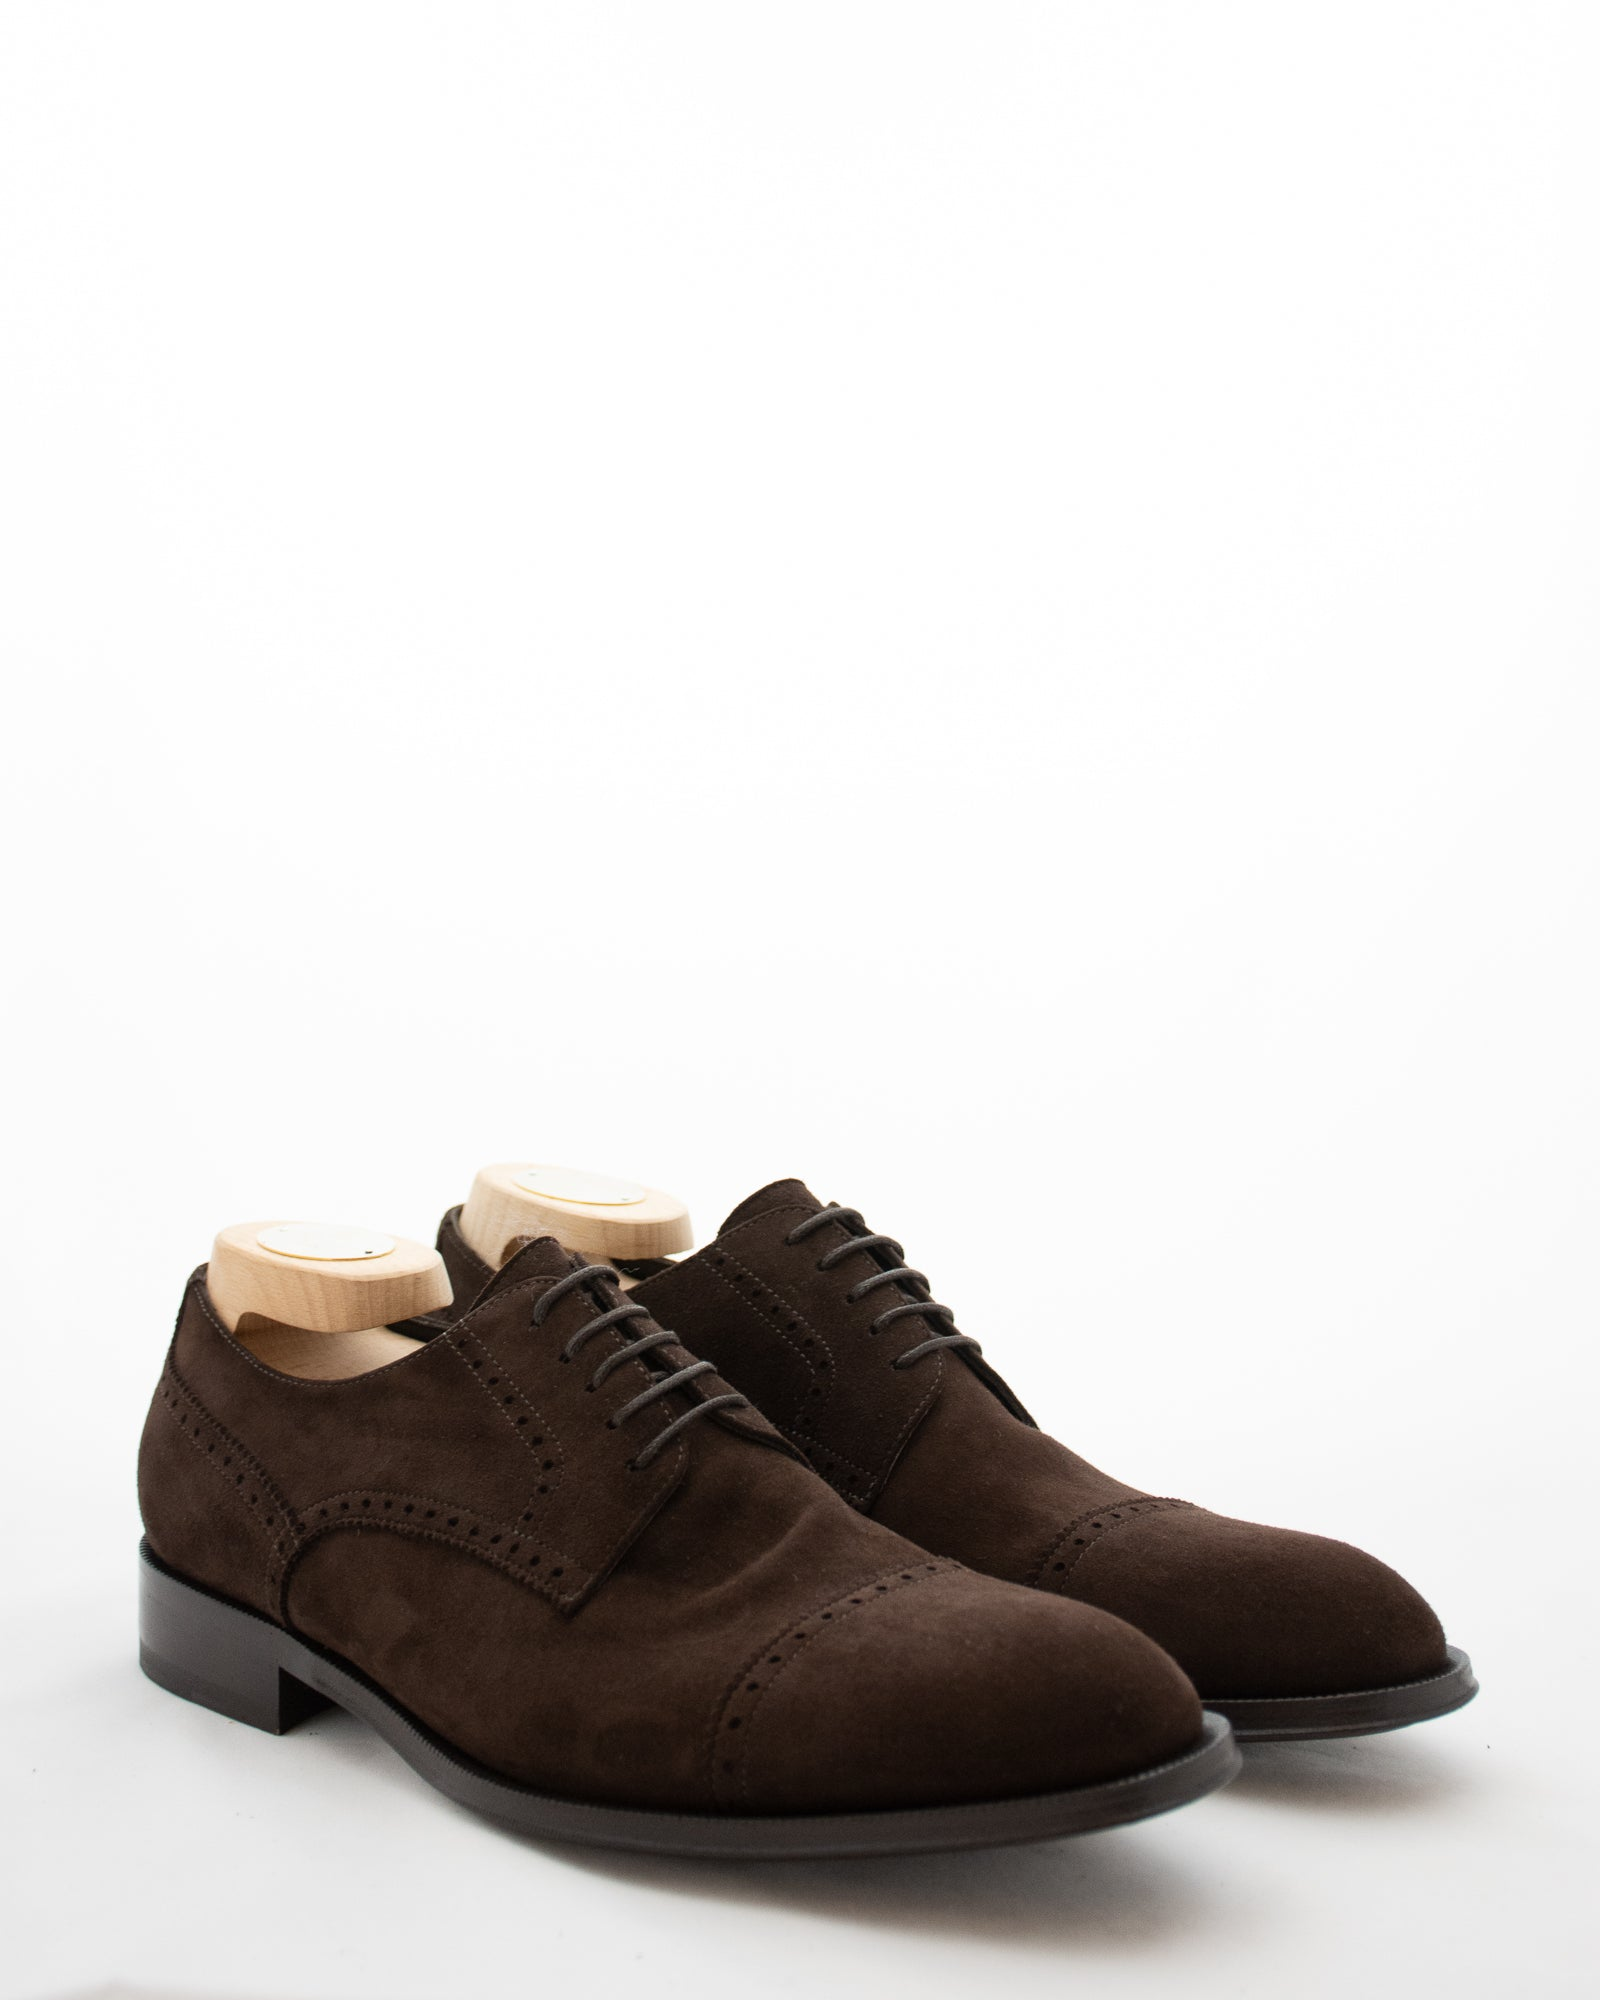 CORNELIANI Suede Brogue